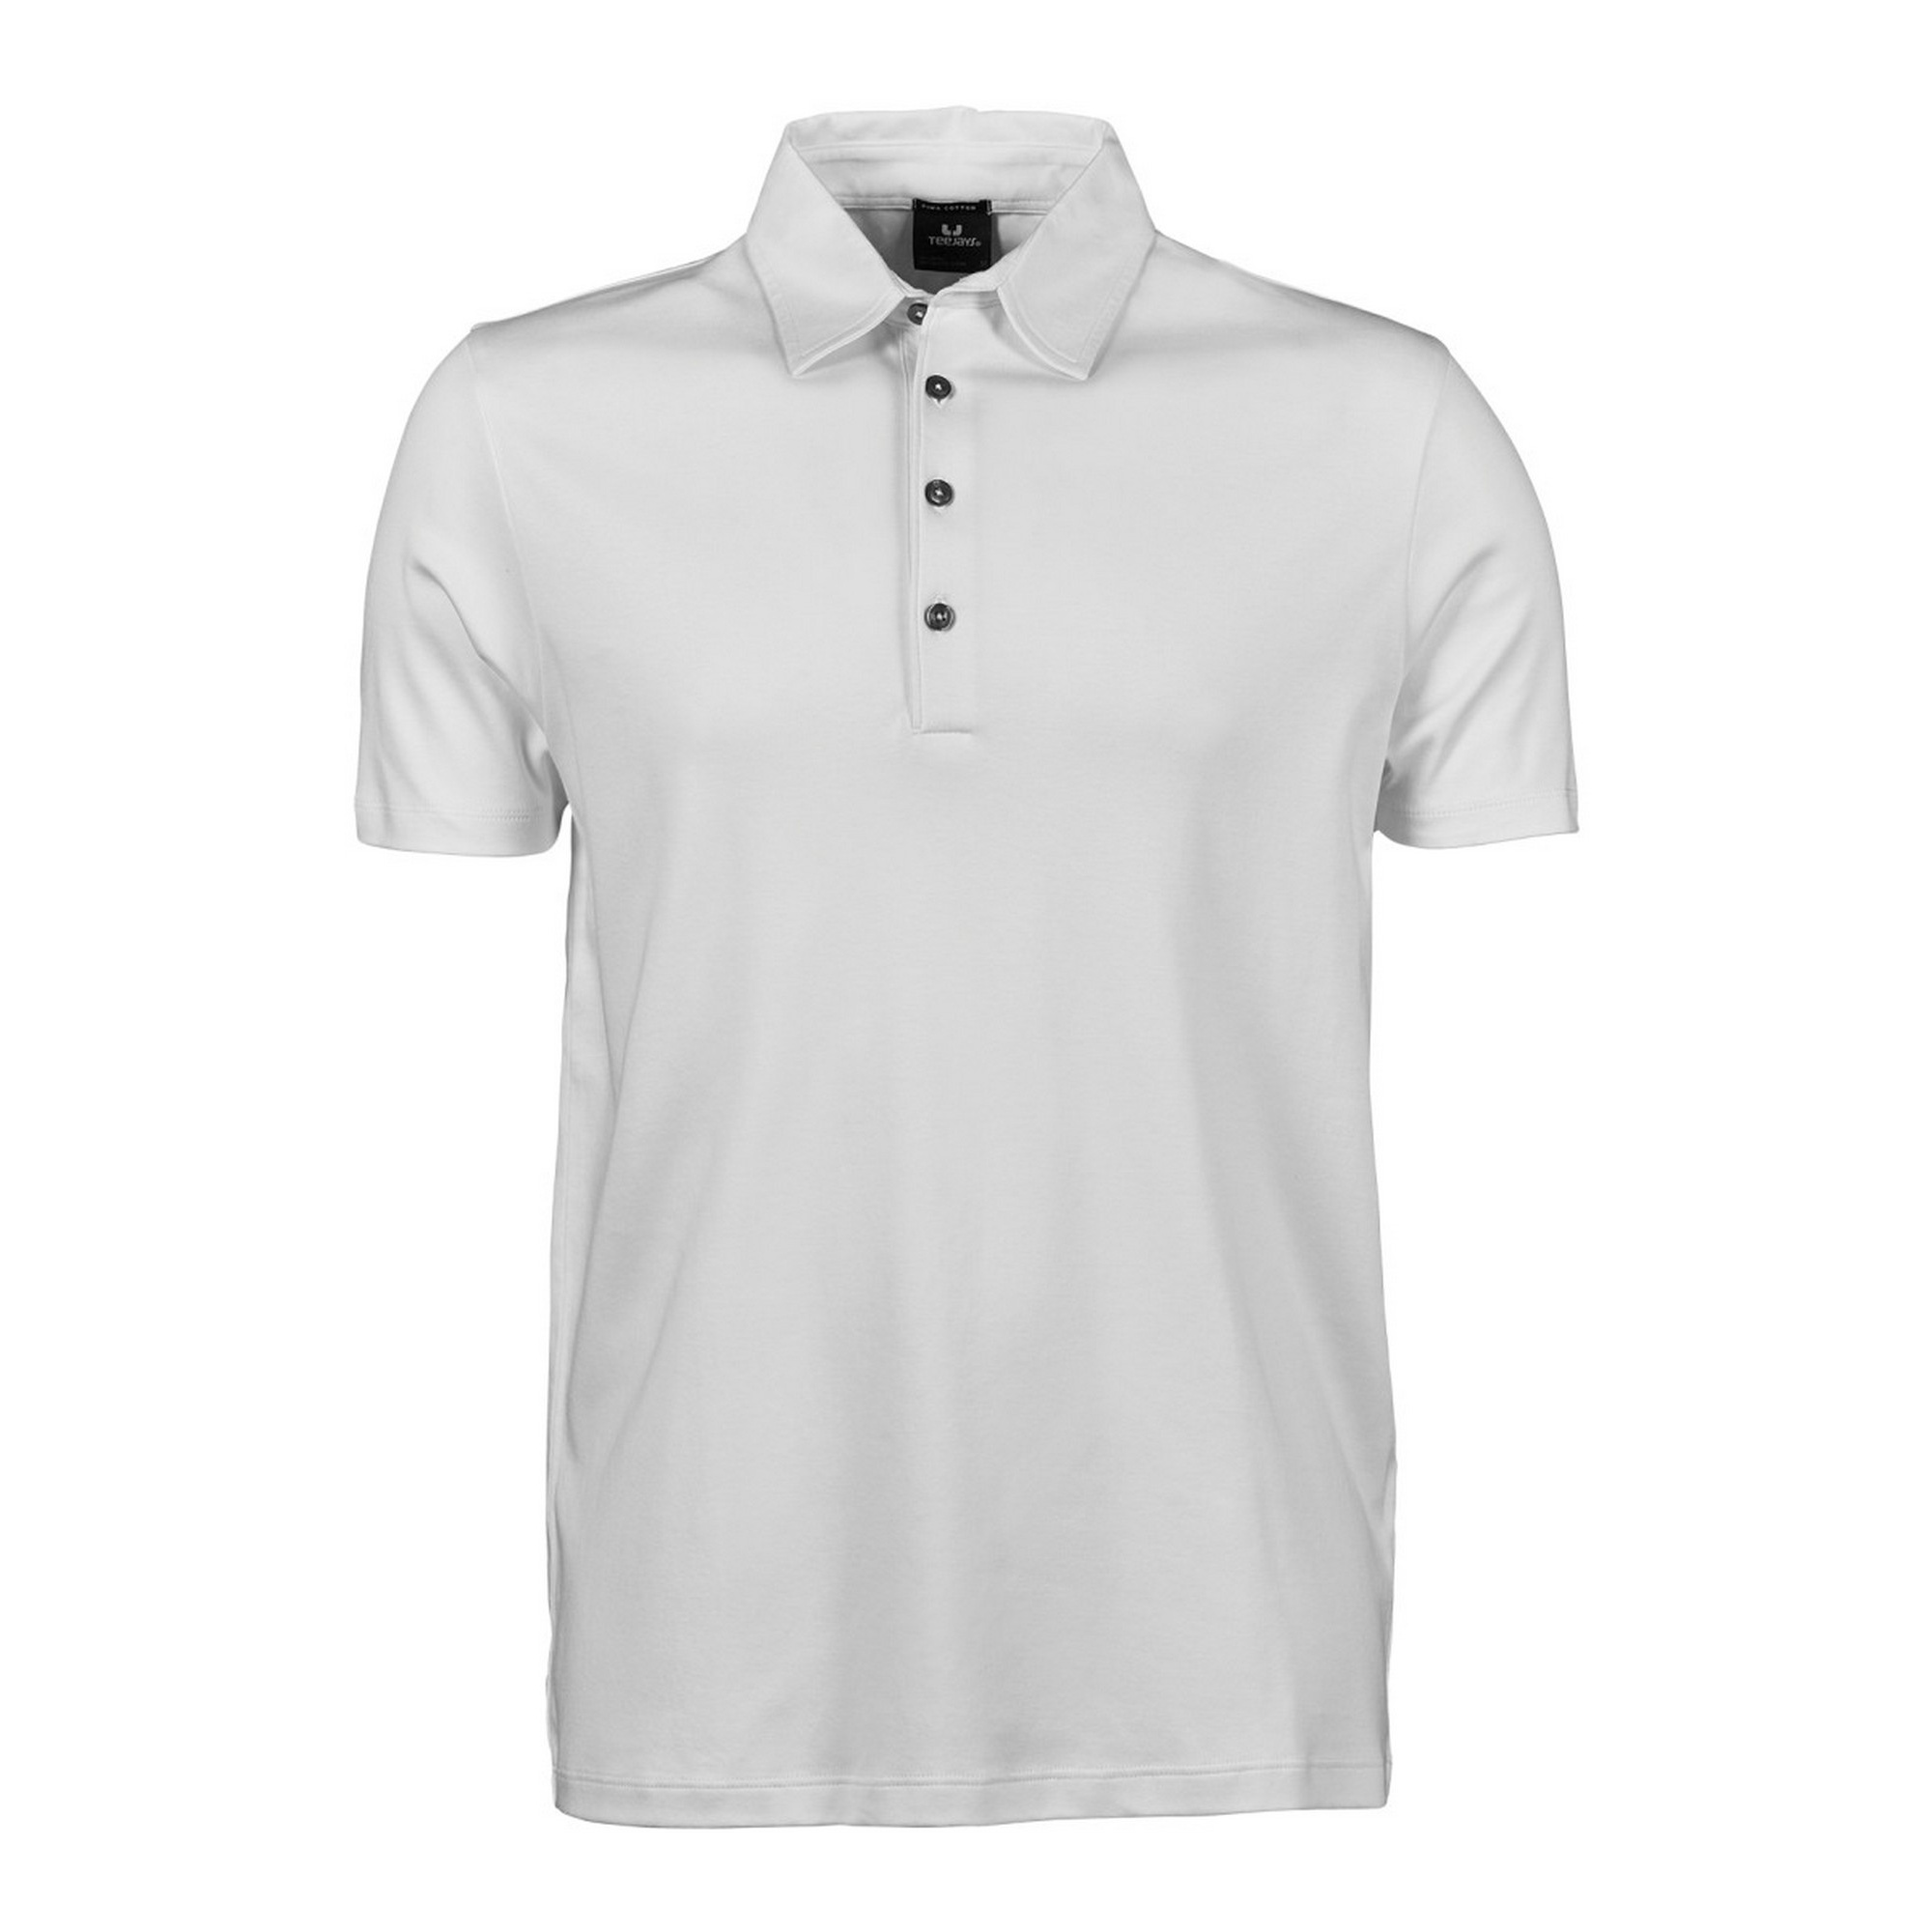 Tee Jays Mens Pima Short Sleeve Cotton Polo Shirt UK Size 2xl Dark Grey.  About this product. Picture 1 of 2  Picture 2 of 2 7dca9921403